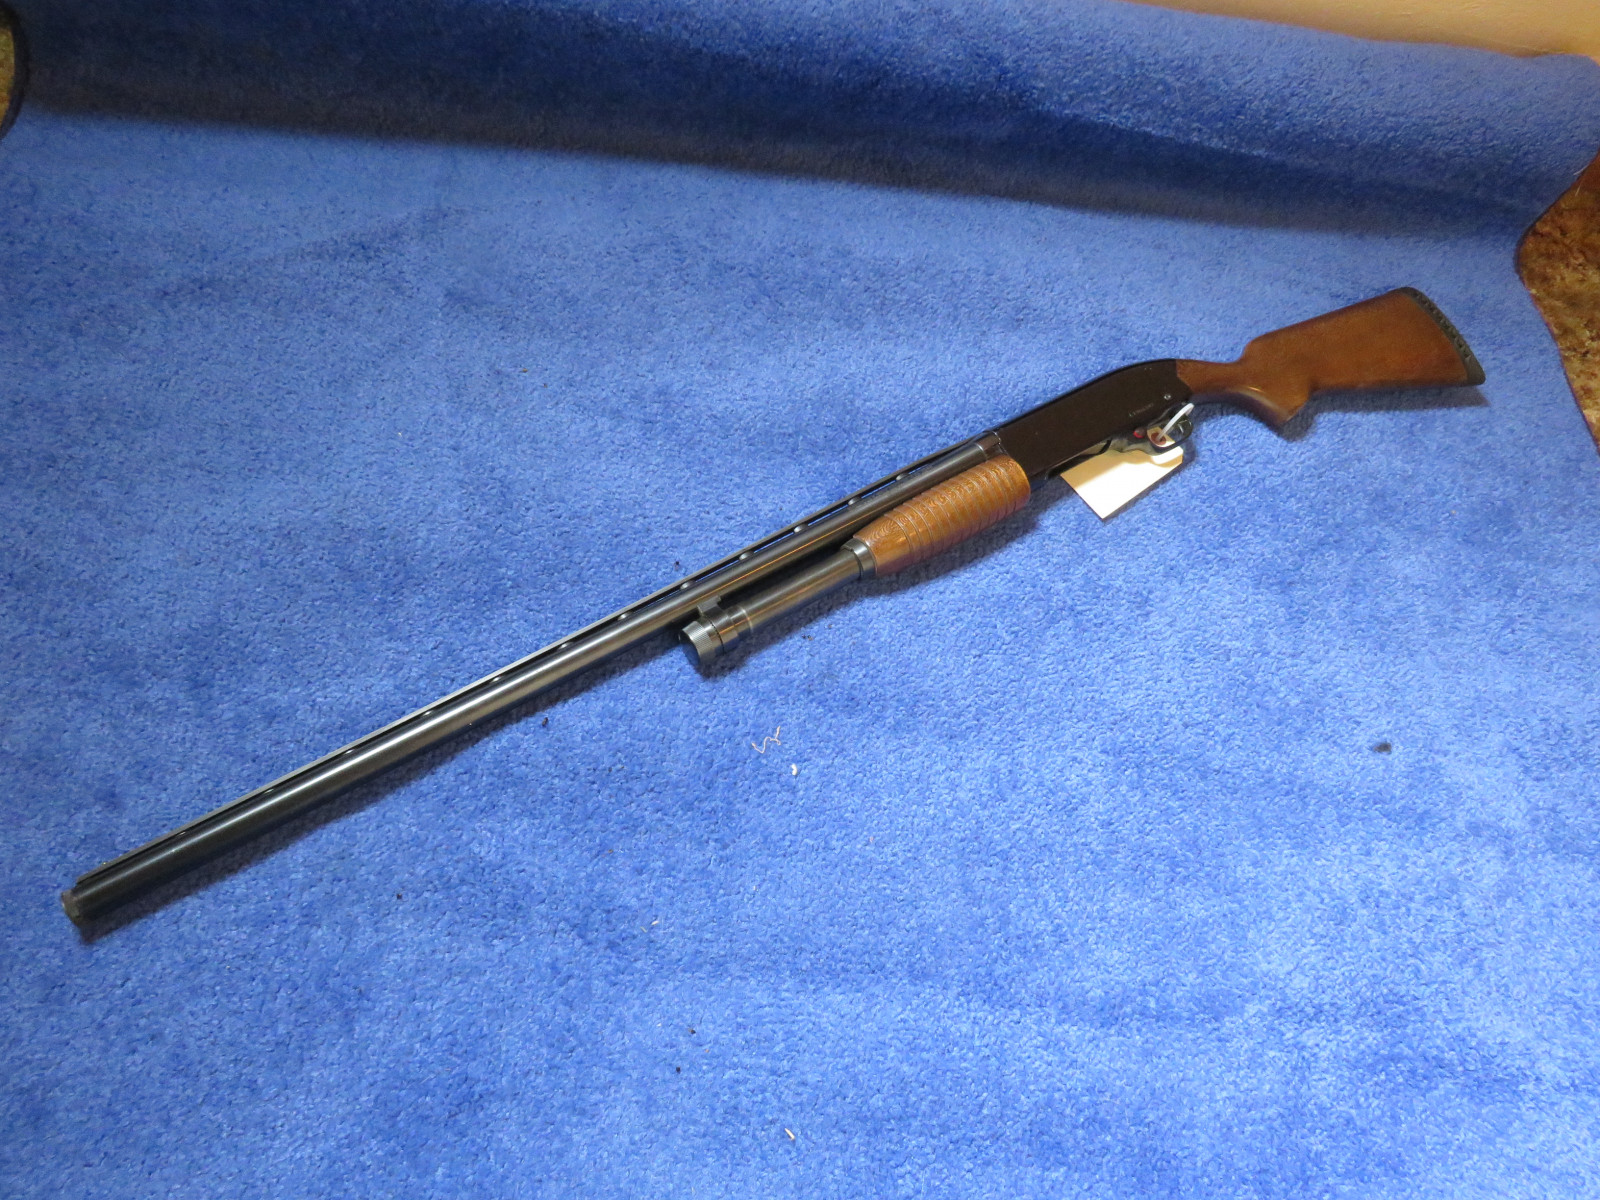 Winchester Model 120 12 Gauge Shotgun - Image 2